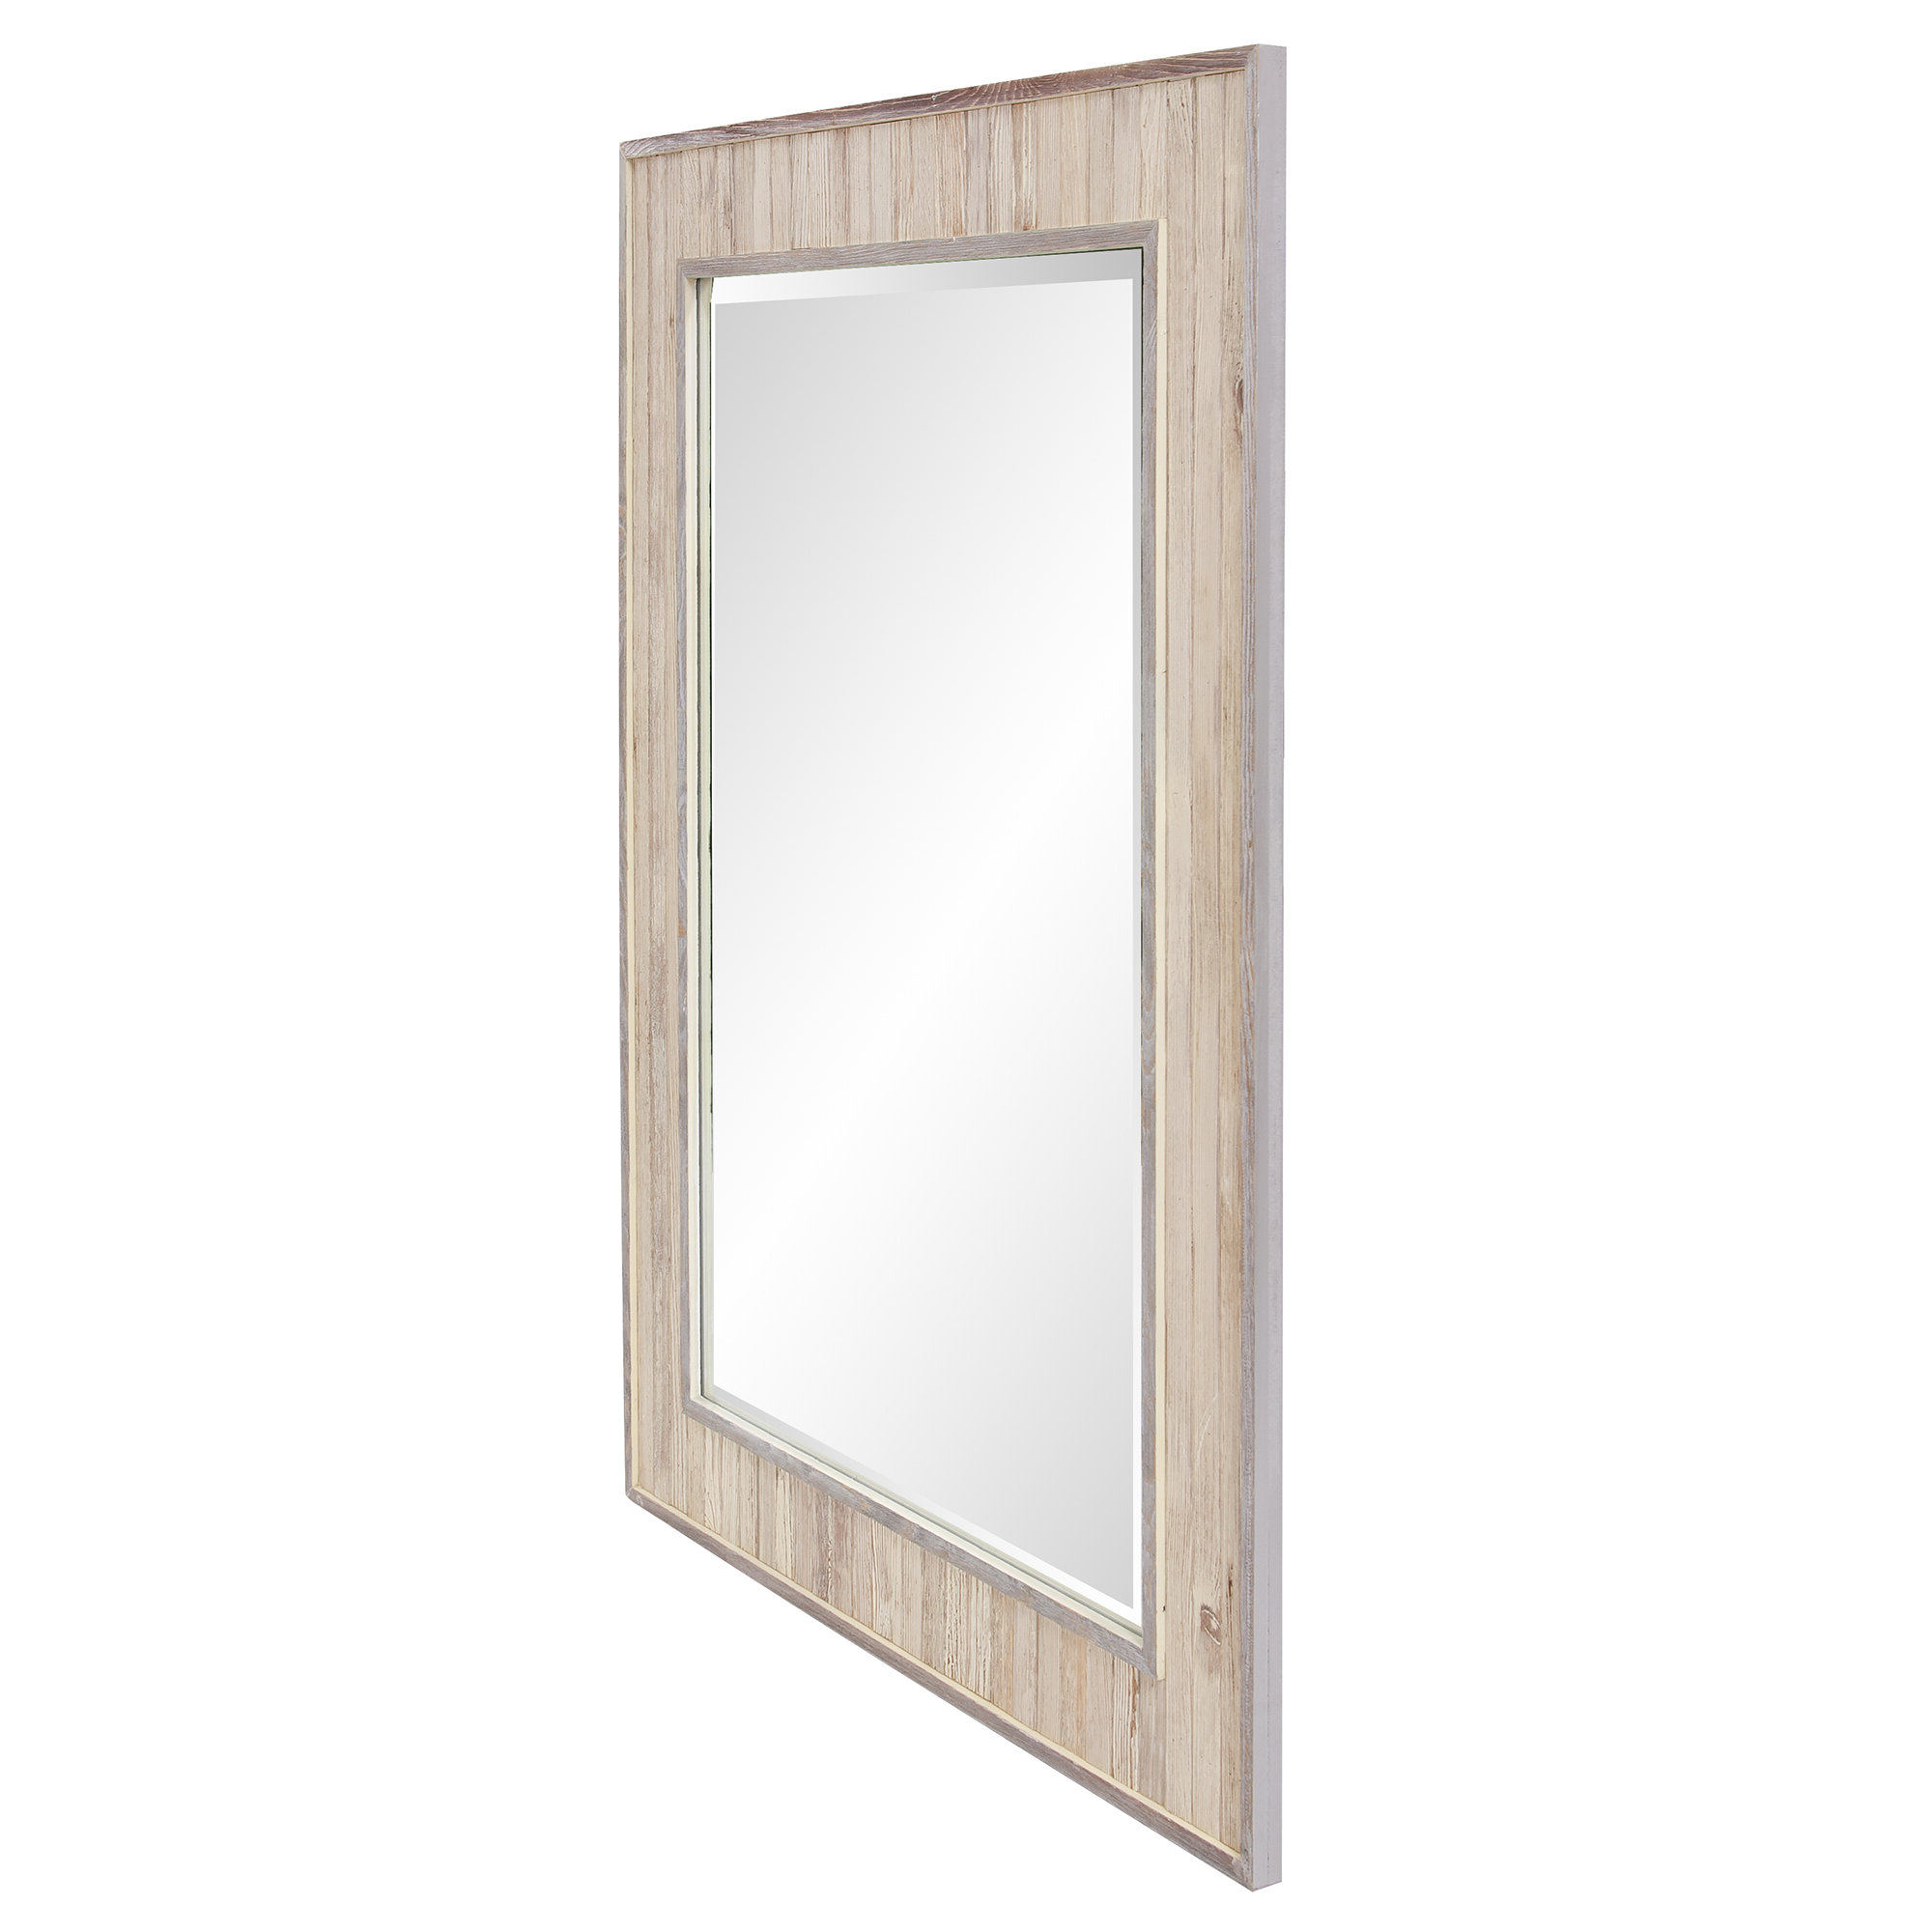 2019 Lexington Wood Rectangle Wall Mirror With Regard To Rectangle Wall Mirrors (View 18 of 20)